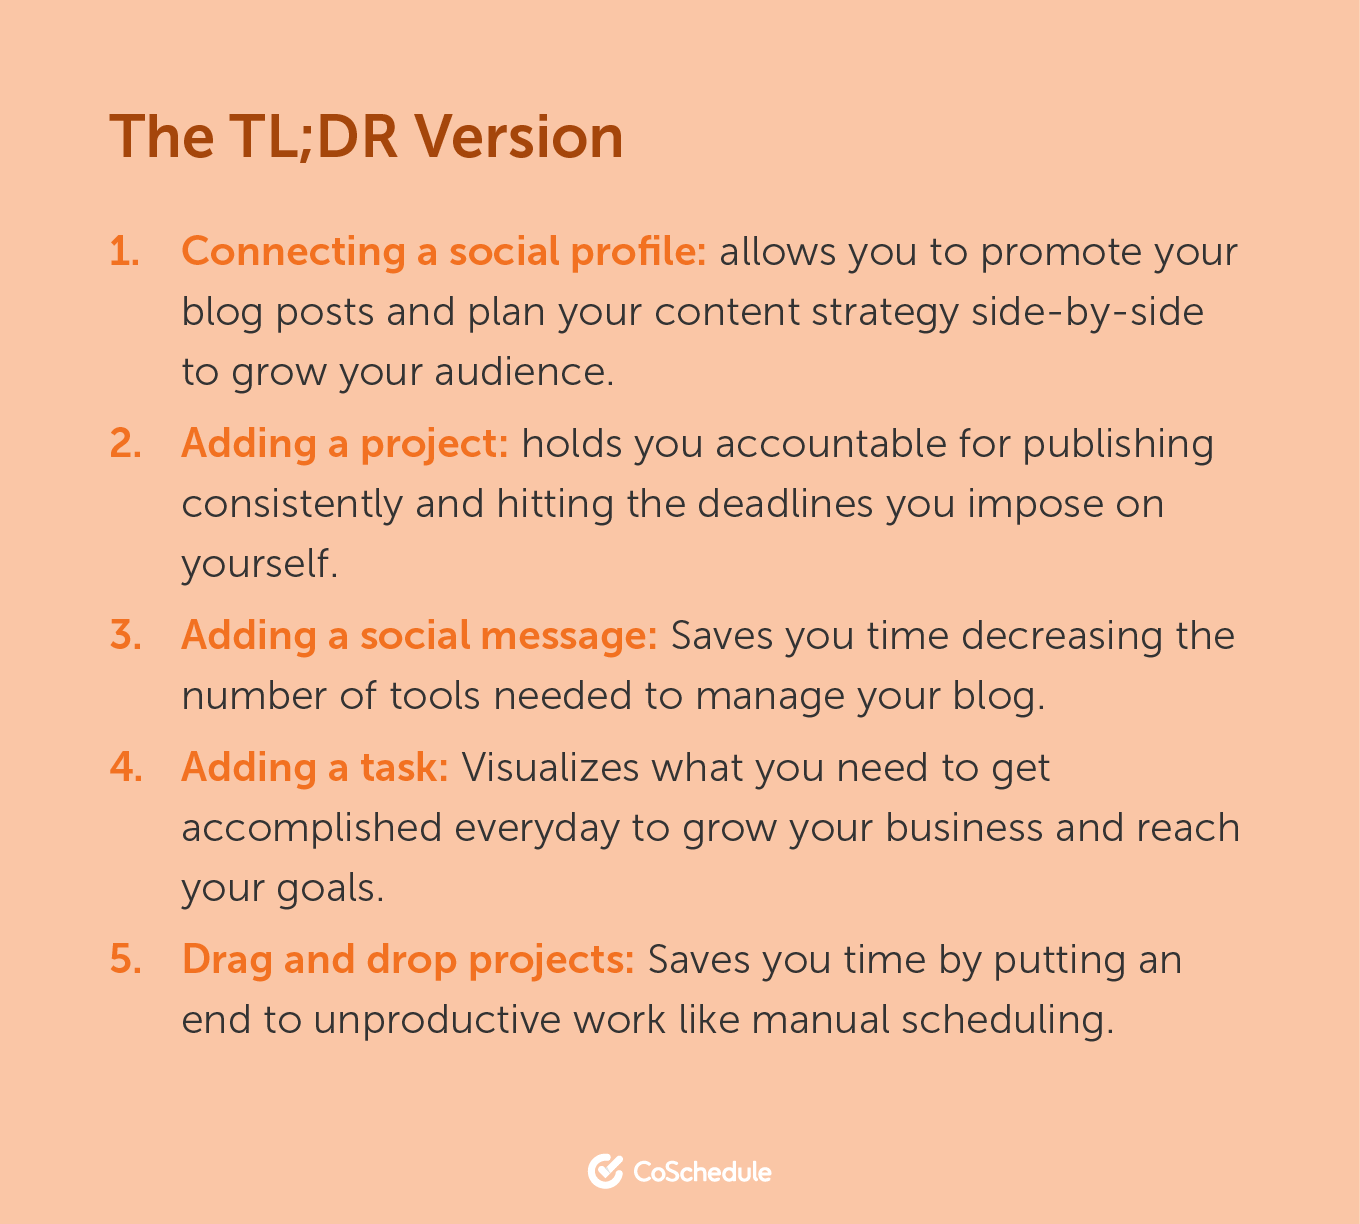 TL;DR Version 1: Connecting a social profile. 2: Adding a project. 3: Adding a social message. 4: Adding a task. 5. Drag and drop projects.